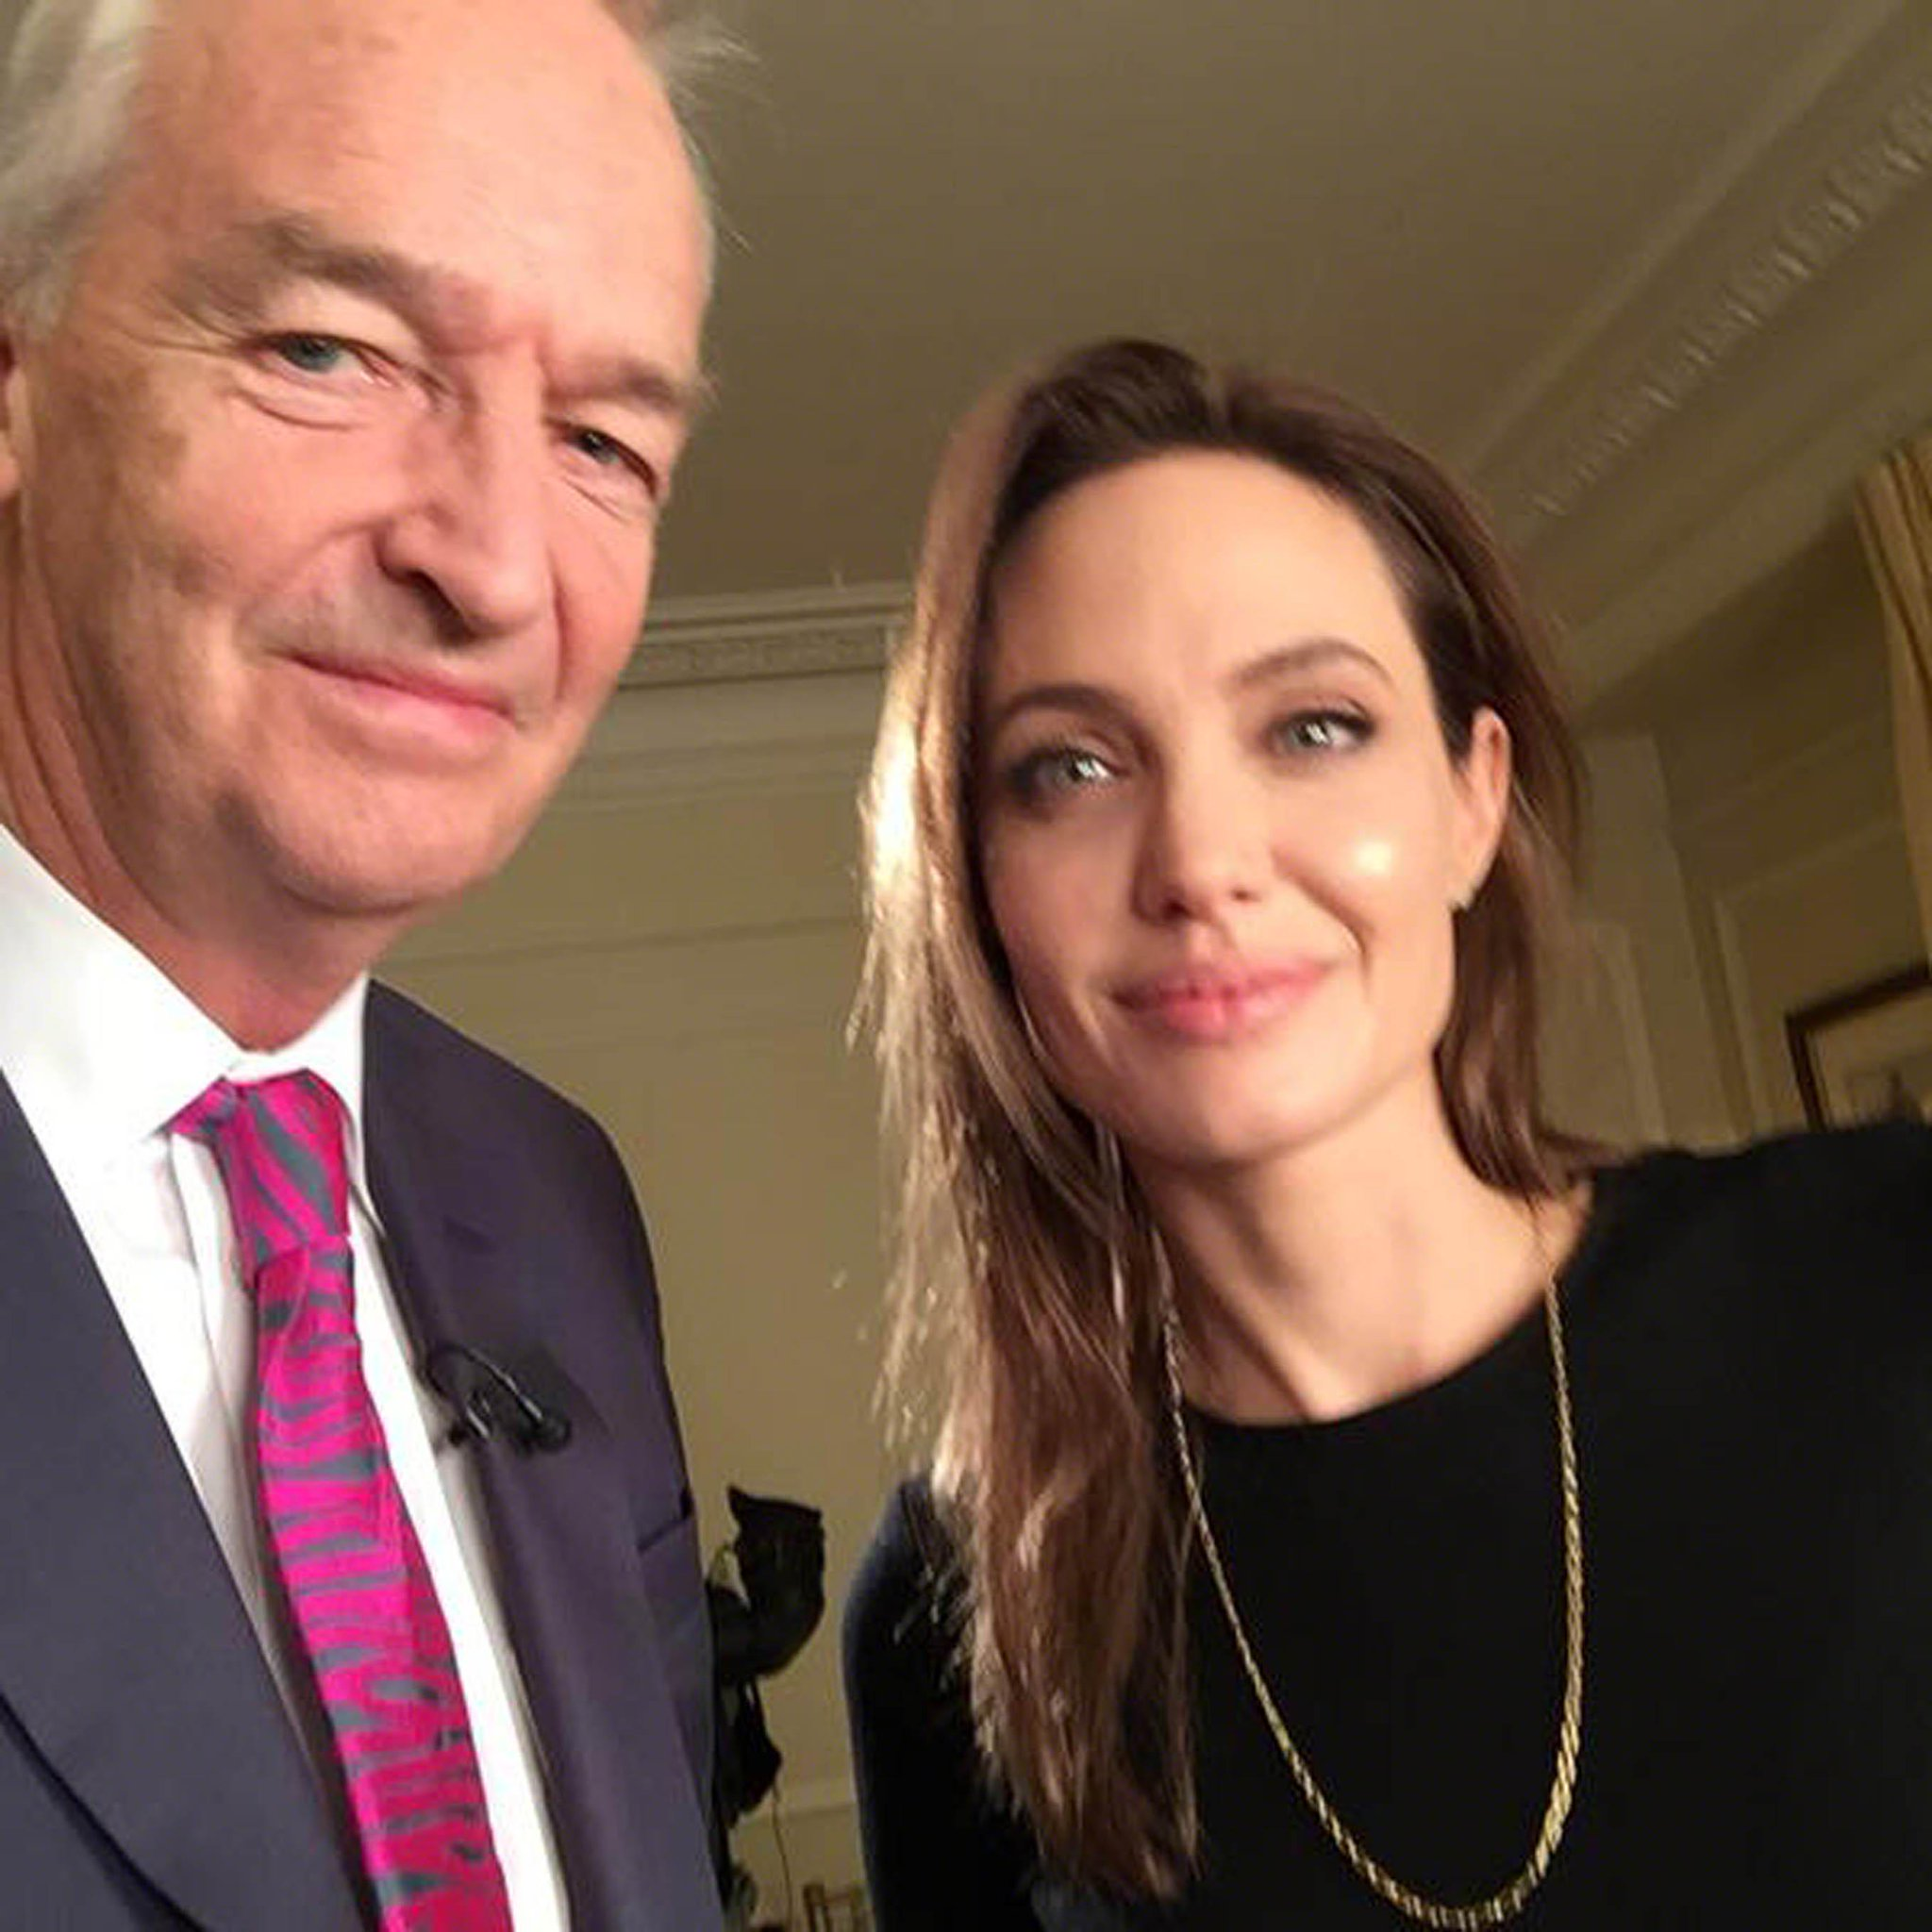 Jon Snow's selfie with Ange. And other @instagram snaps we loved today http://t.co/vBg1s0ECqw #Instacram http://t.co/BWSvvlKMcx